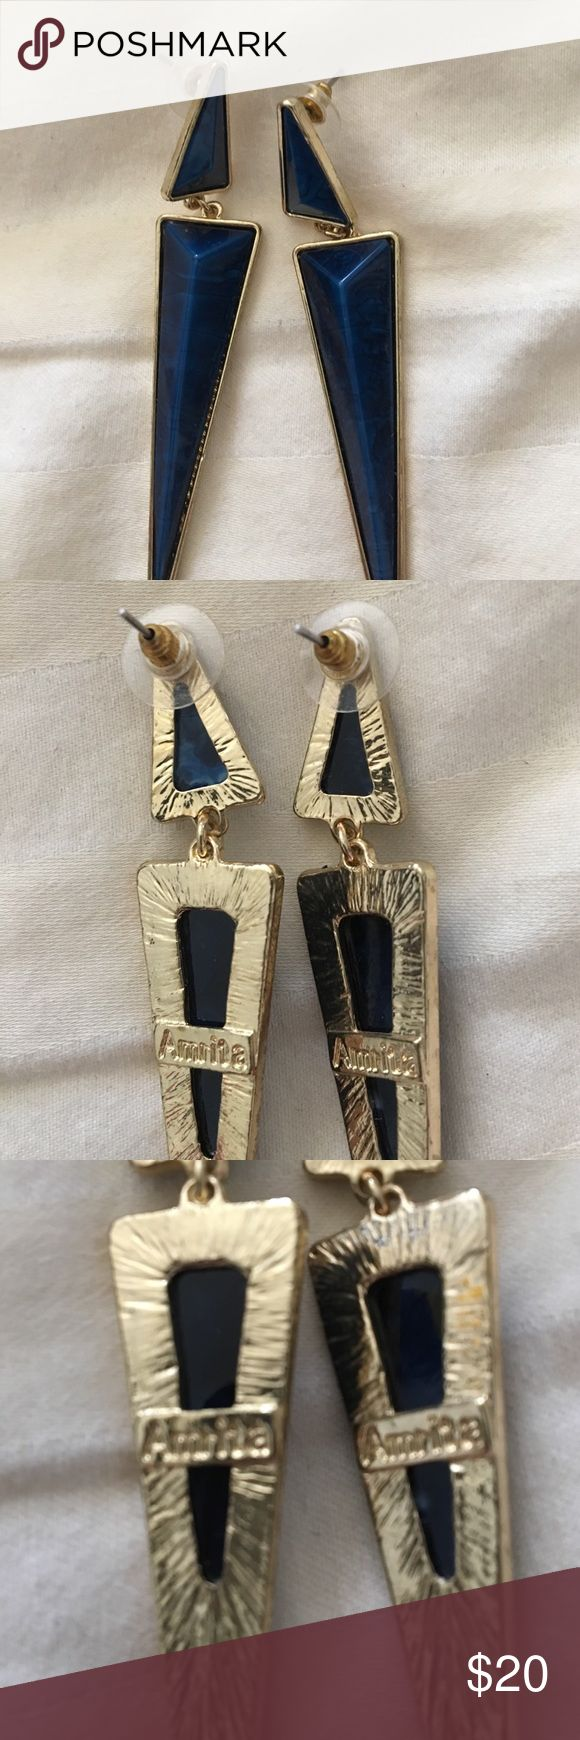 Navy and gold dangle earrings Amrita Singh navy and gold dangle earrings. Pierced ears. Light. In great shape, worn just a few times. Amrita Singh Jewelry Earrings